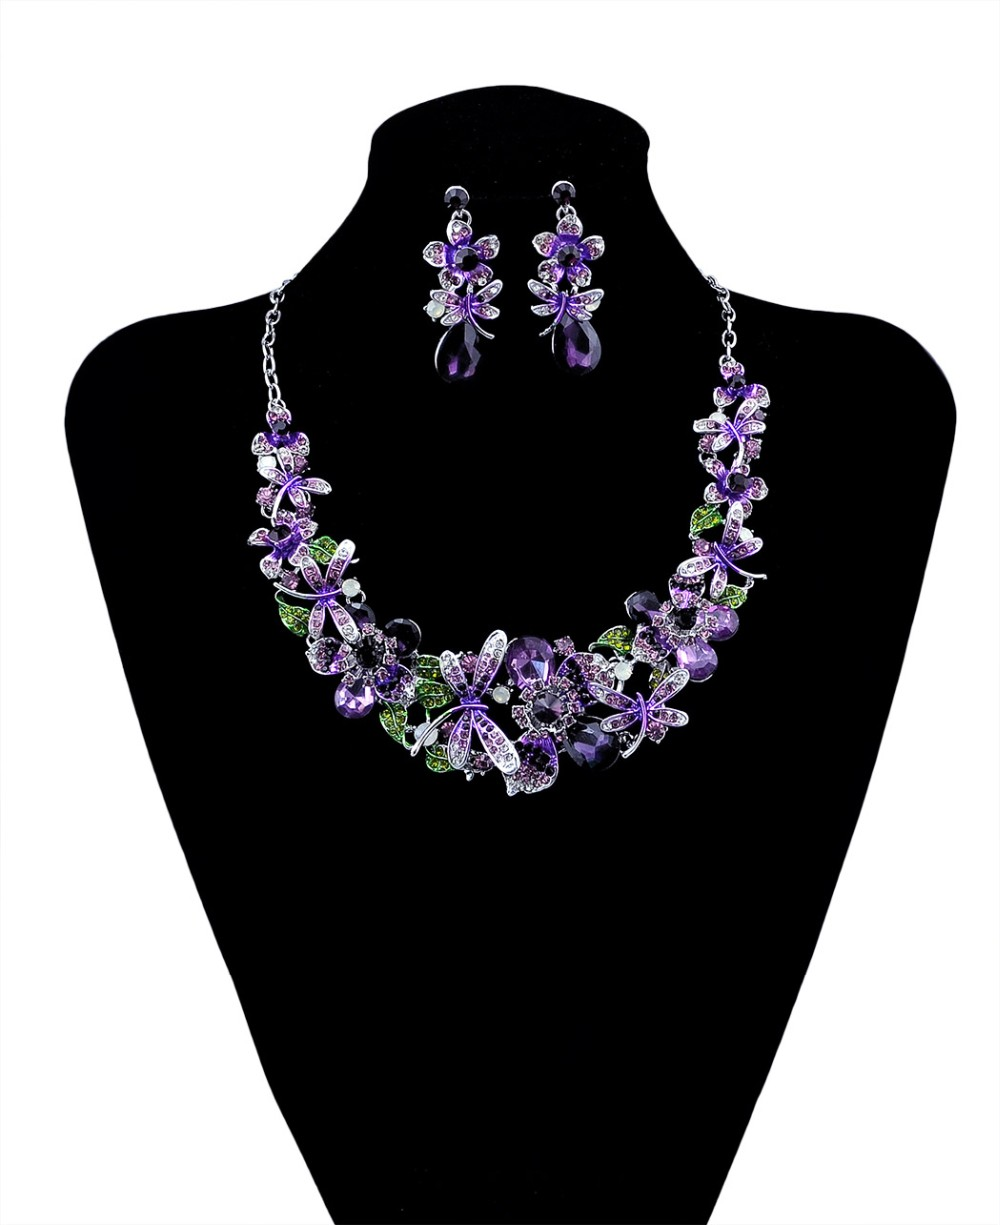 New Fashion Korean Style Silver Chain Colorful Charm Rhinestone Beautiful Flower Dragonfly Bib Statement Necklace And Earrings Set Women Jewelry, statement necklace - idealway_img1.cdn.tradevv.com_4